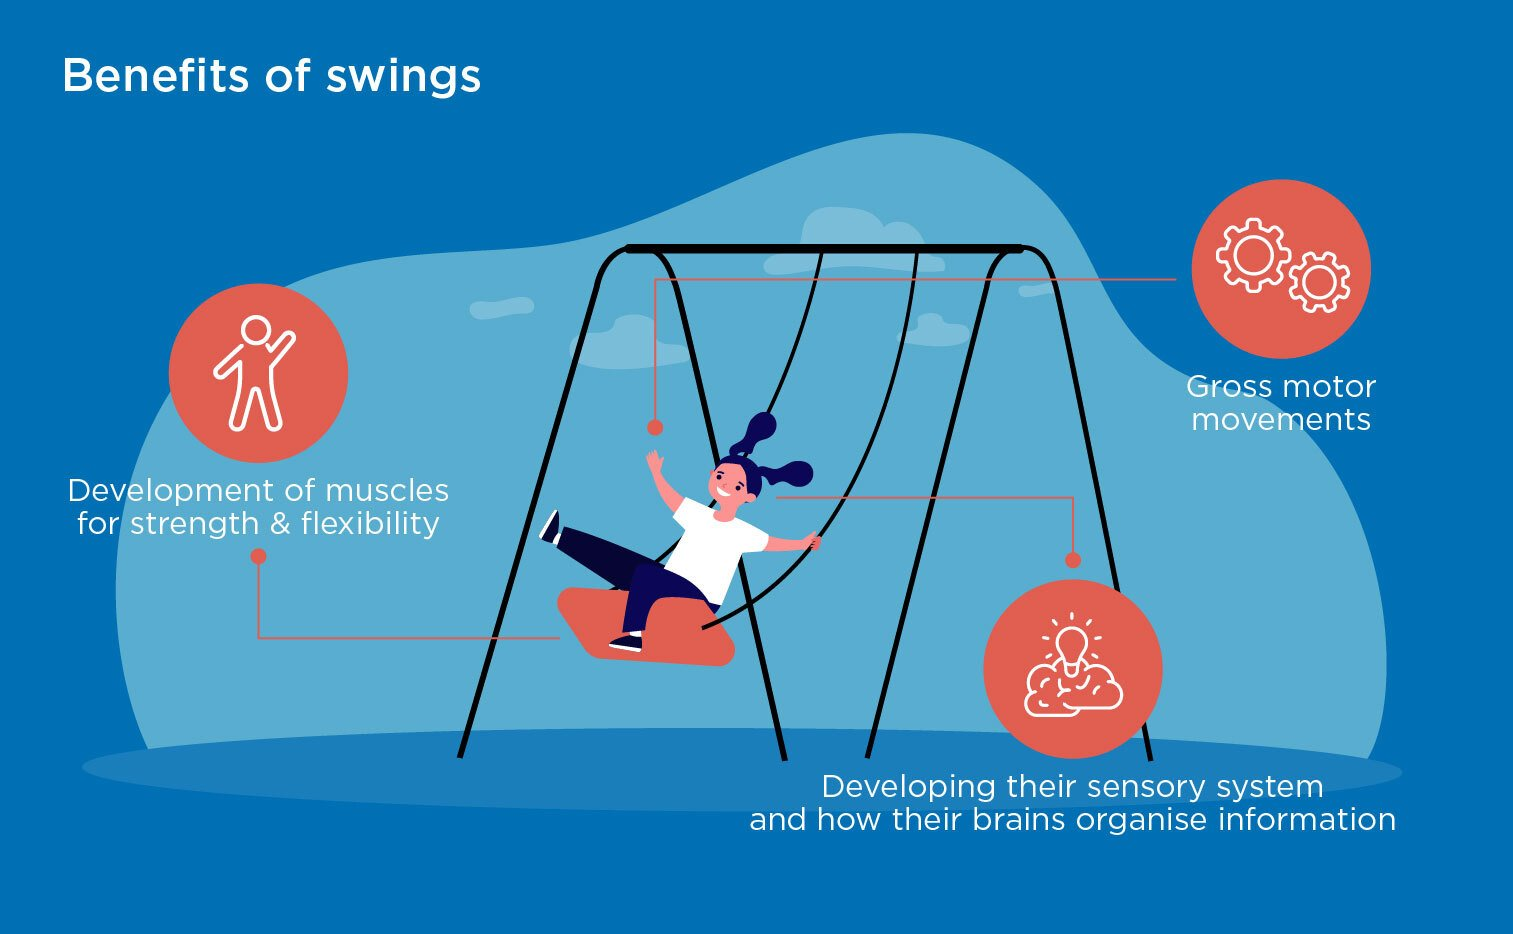 benefits of toddler swings, toddler swing benefits, why swings are good for kids